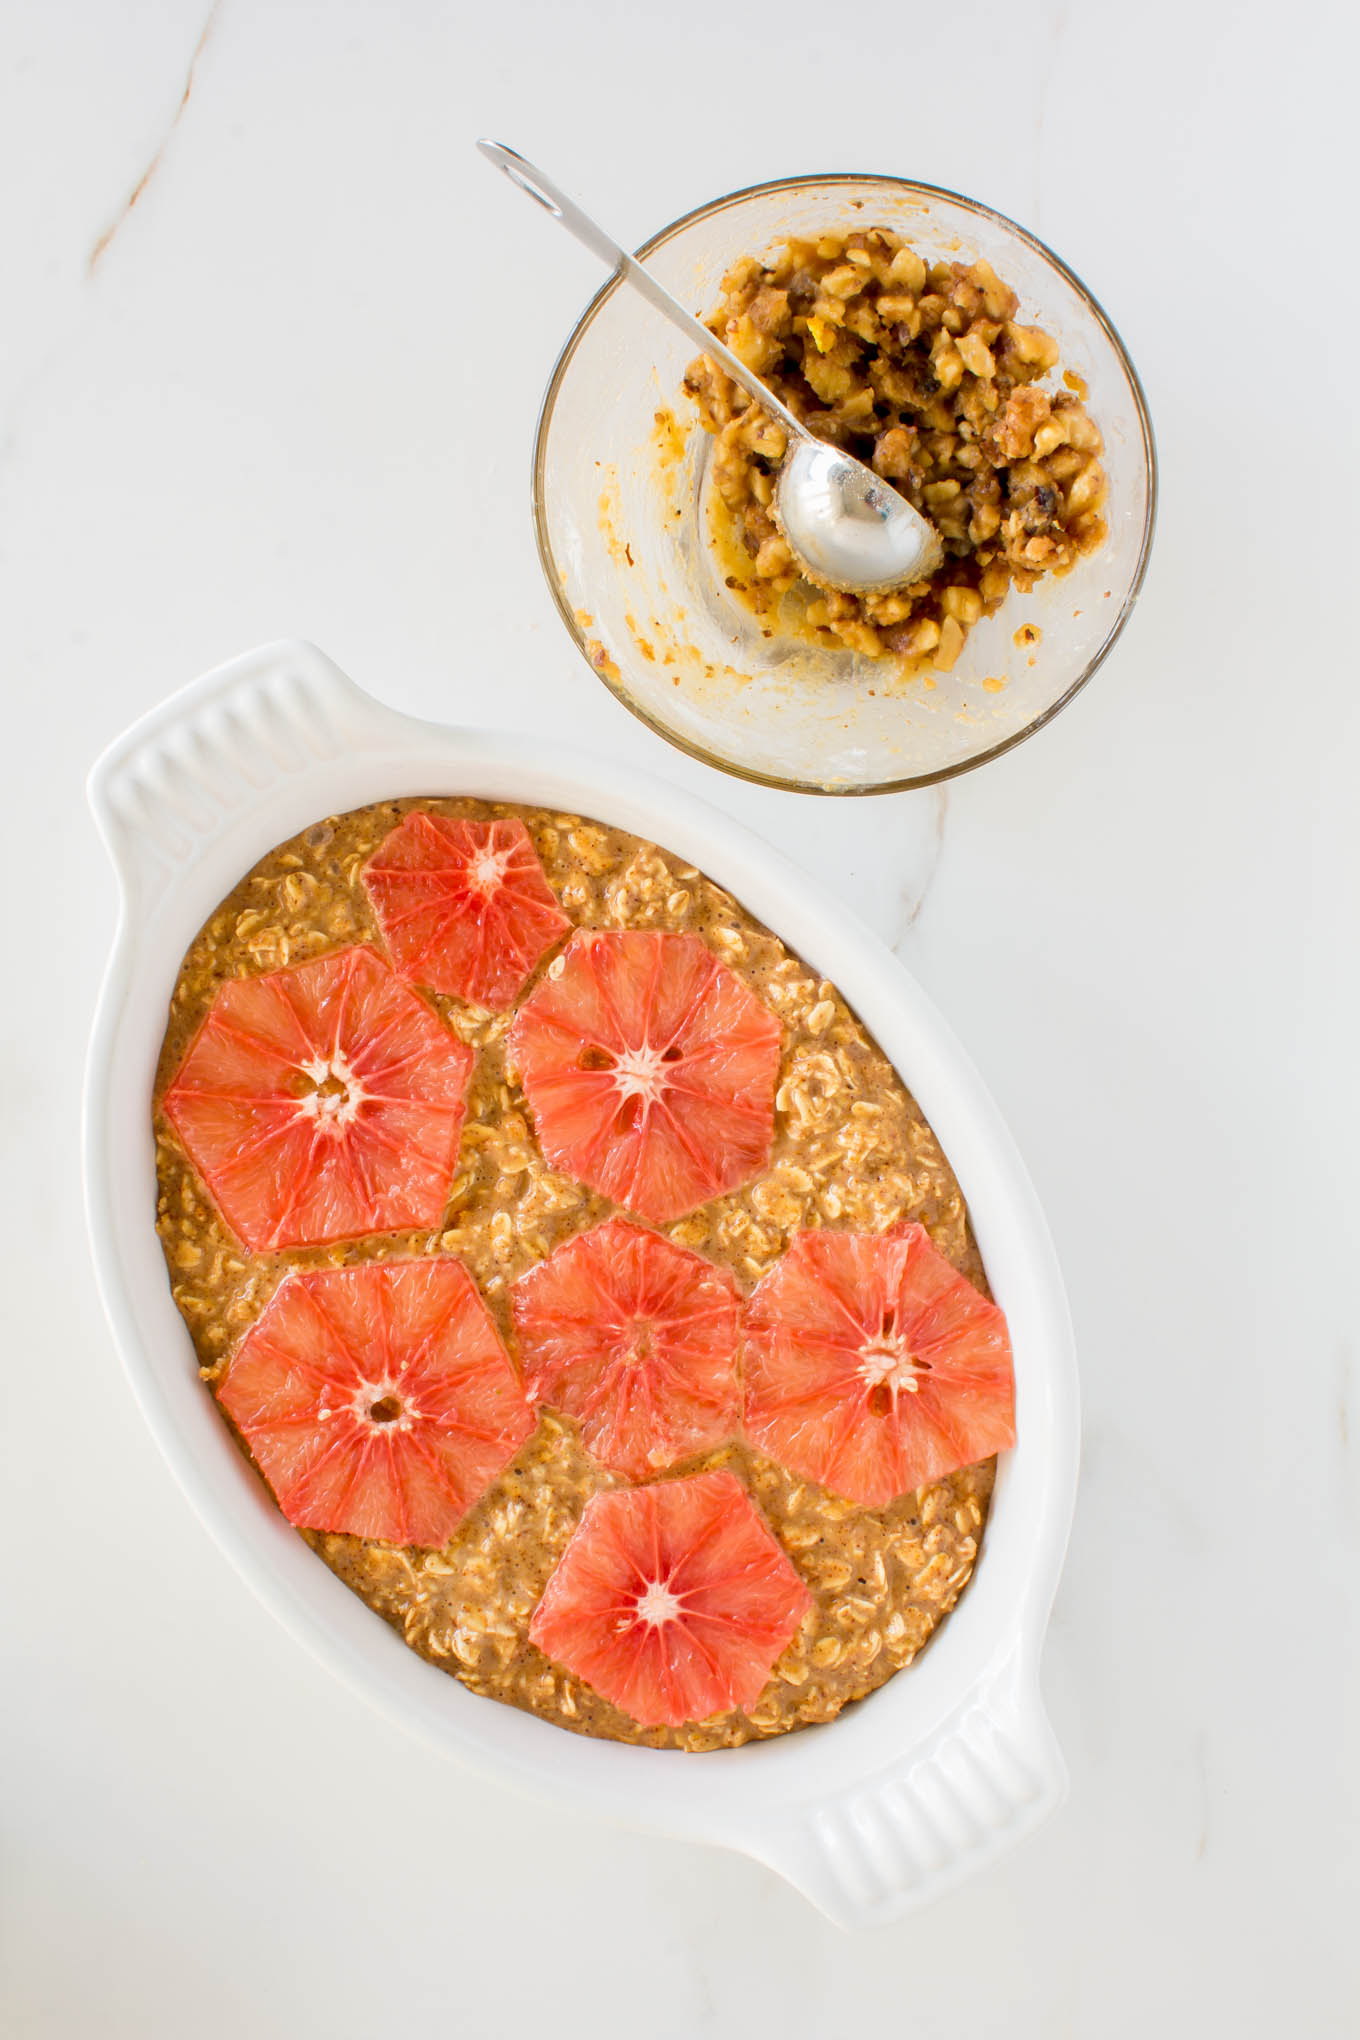 grapefruit baked oatmeal with walnut streusel | immaEATthat.com